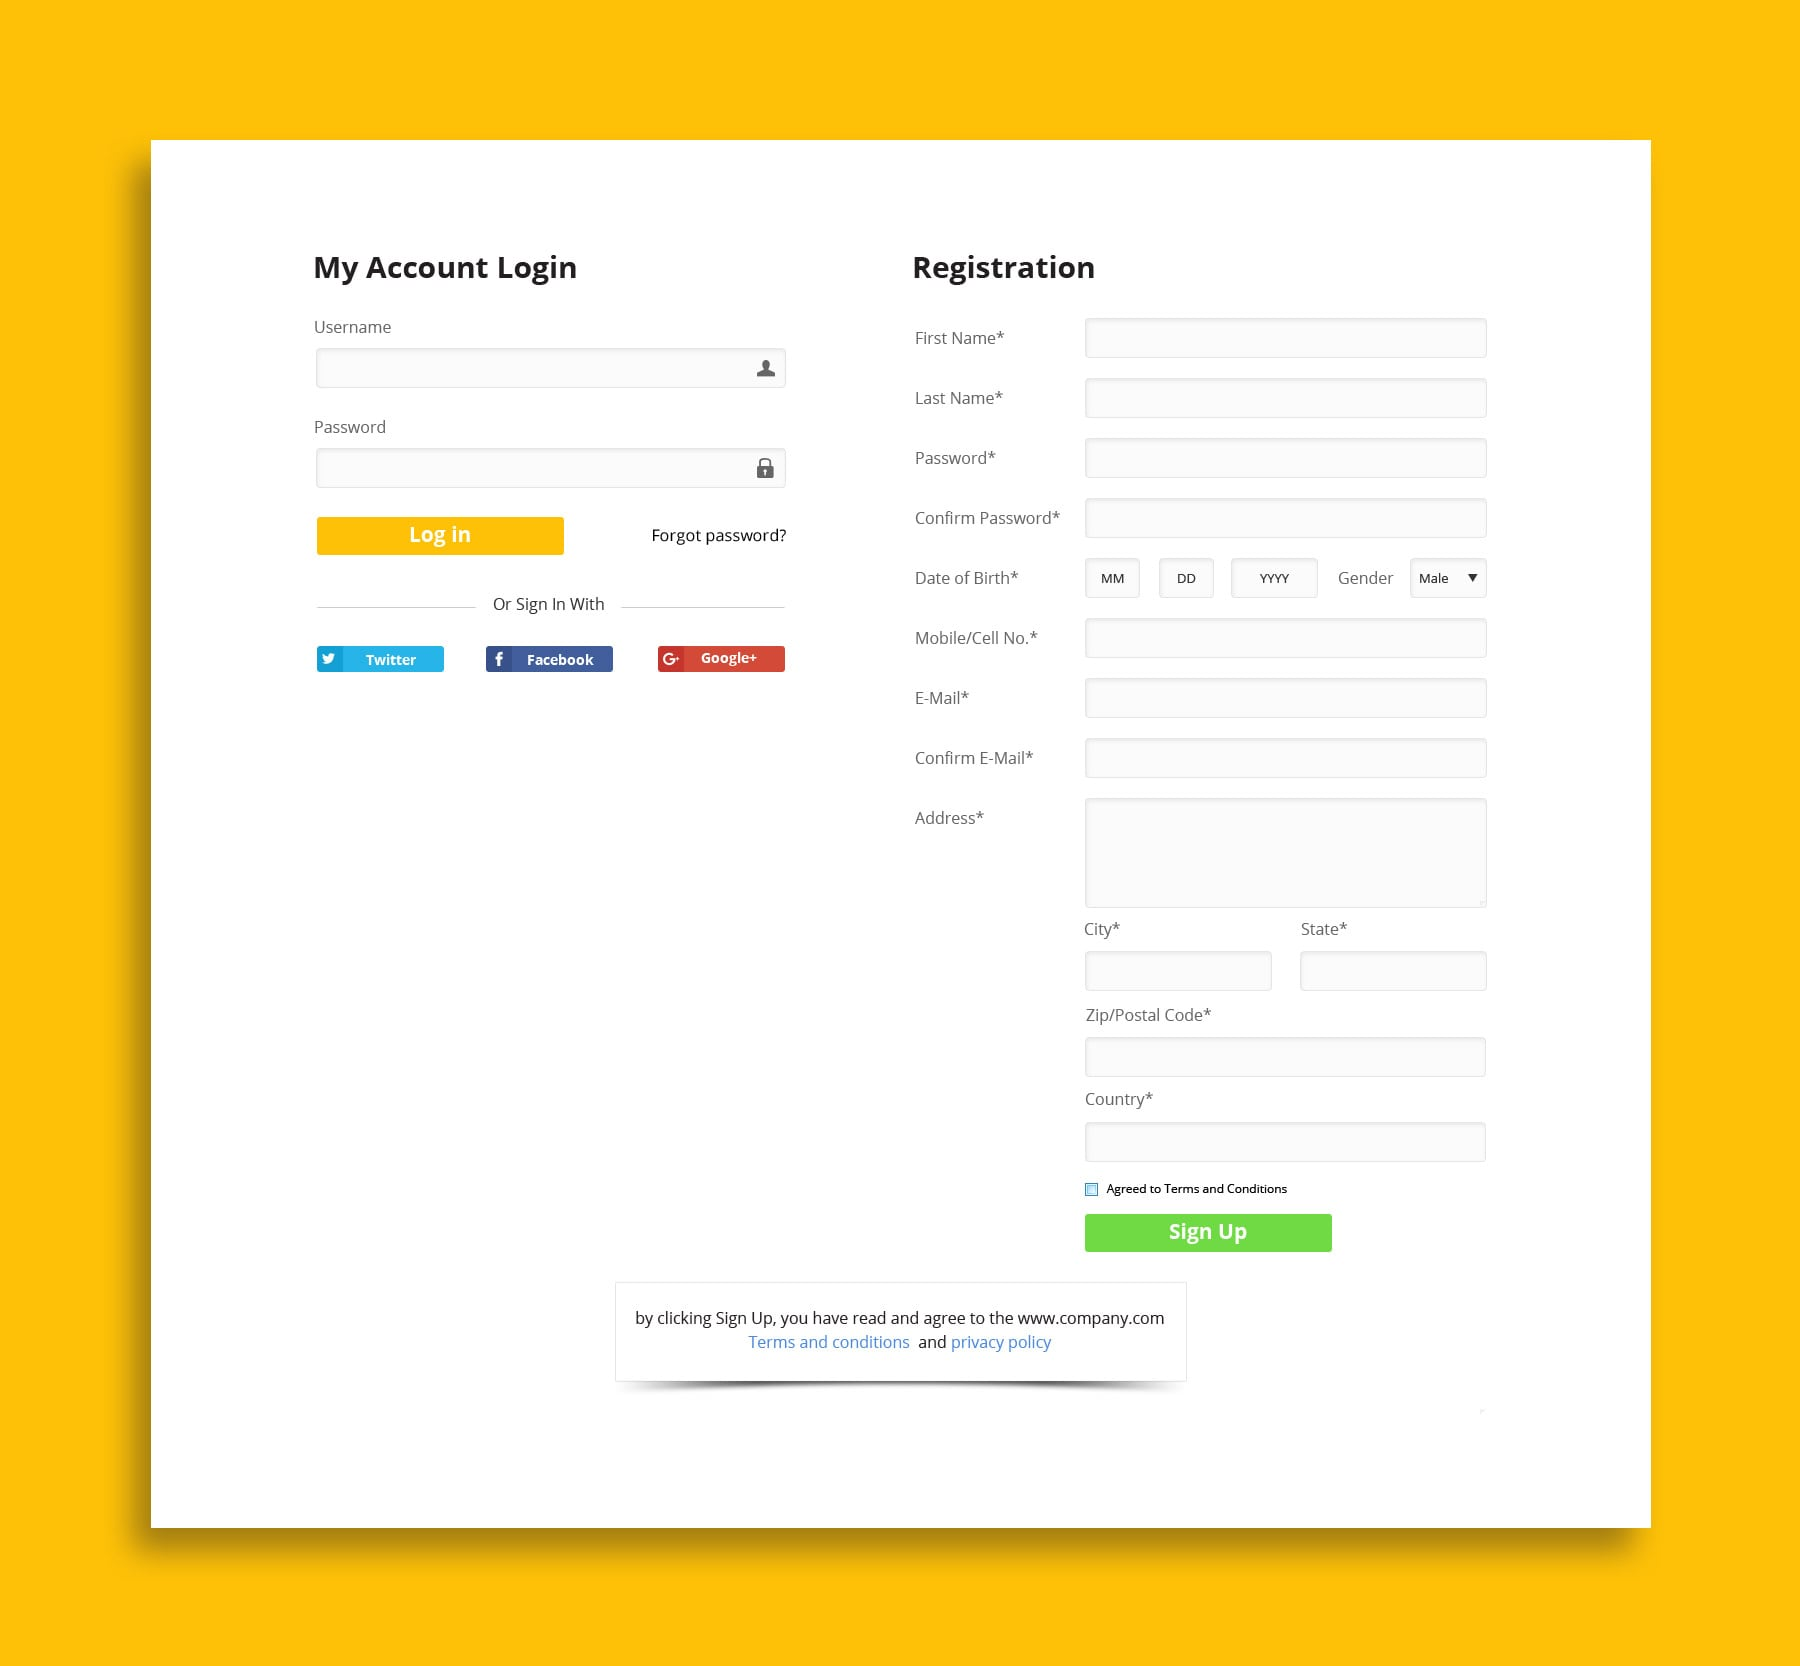 Web site login and registration form